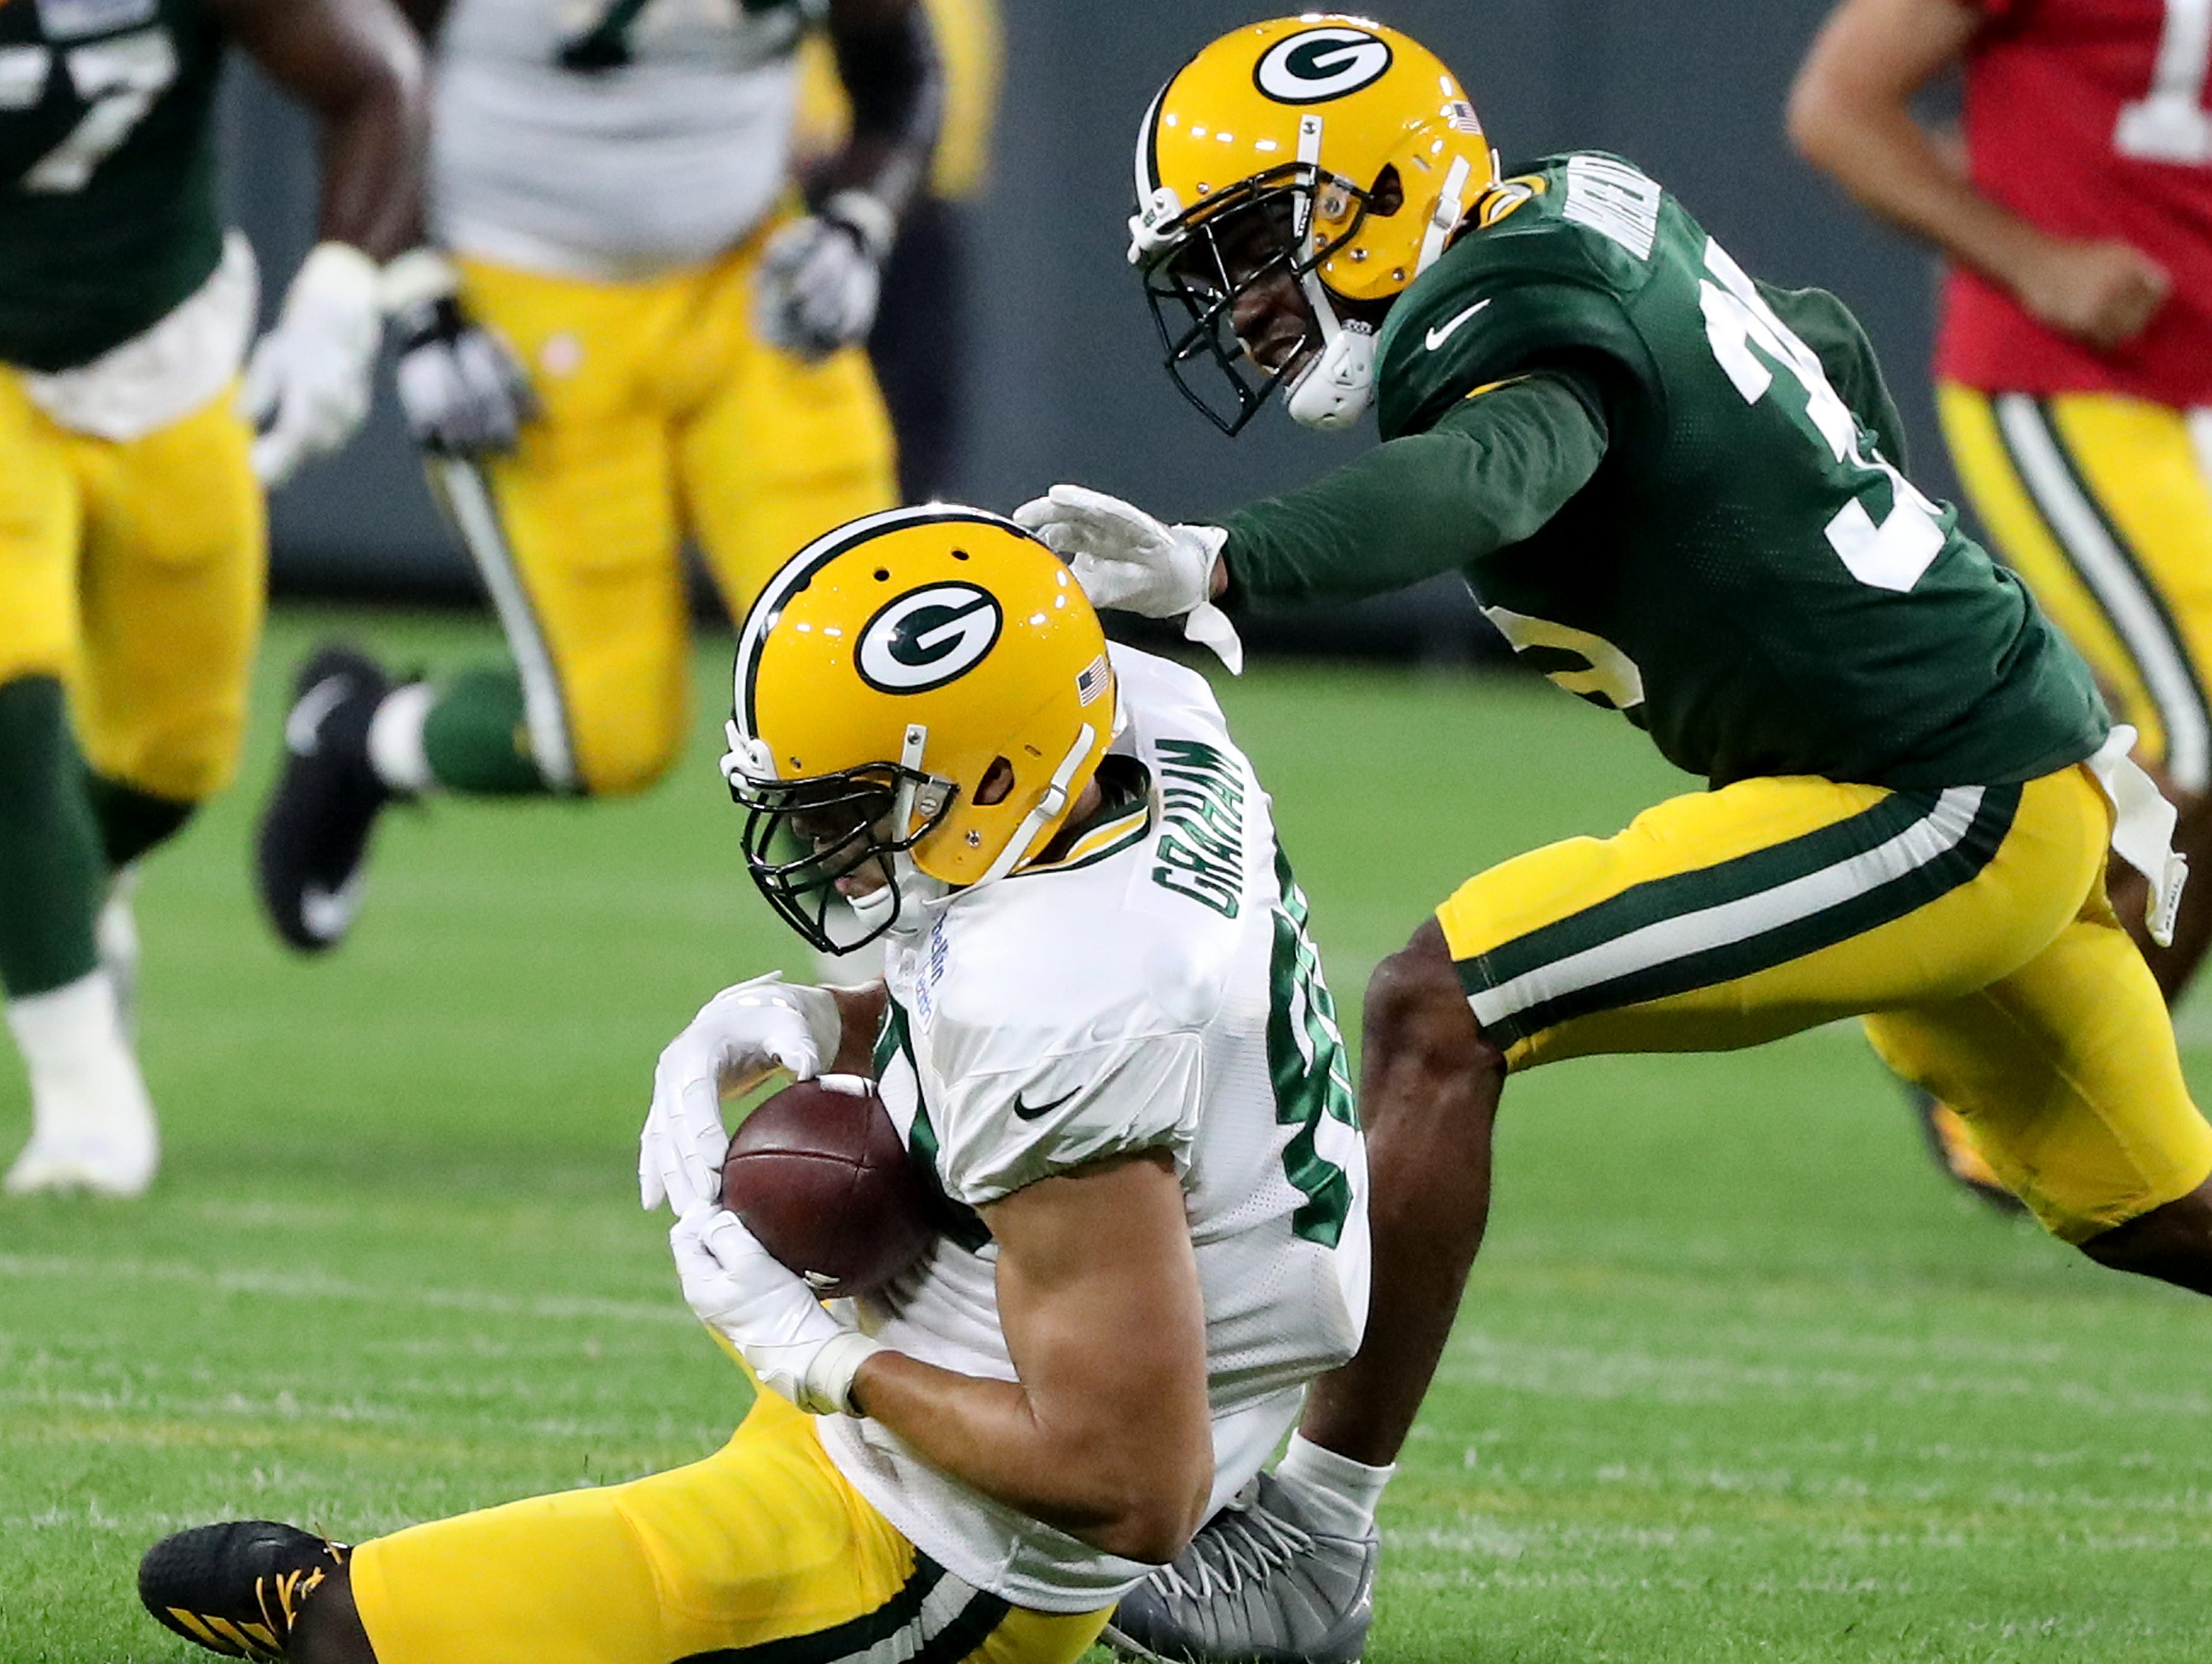 Green Bay Packers tight end Jimmy Graham (80) makes a catch during Green Bay Packers Family Night  Saturday, August 4, 2018 at Lambeau Field in Green Bay, Wis.,